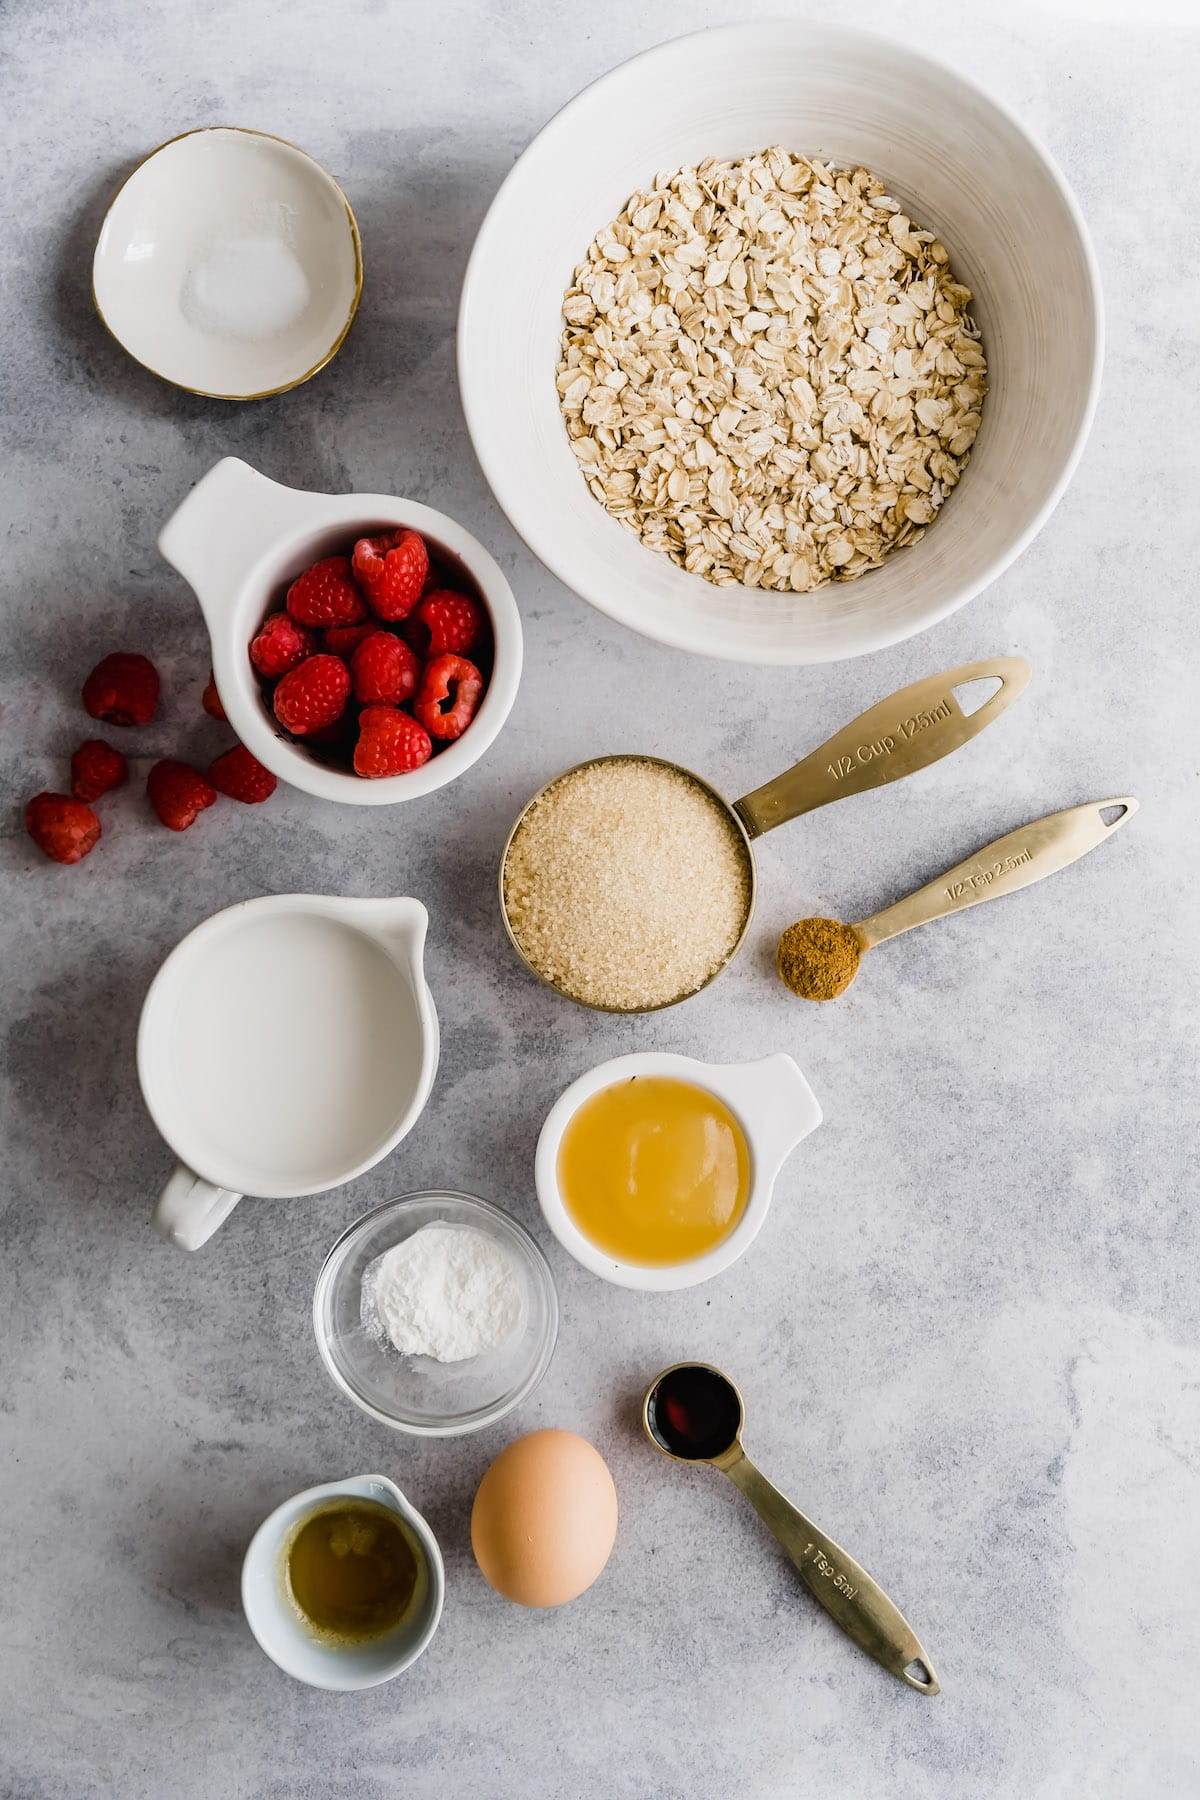 Ingredients for raspberry baked oatmeal.